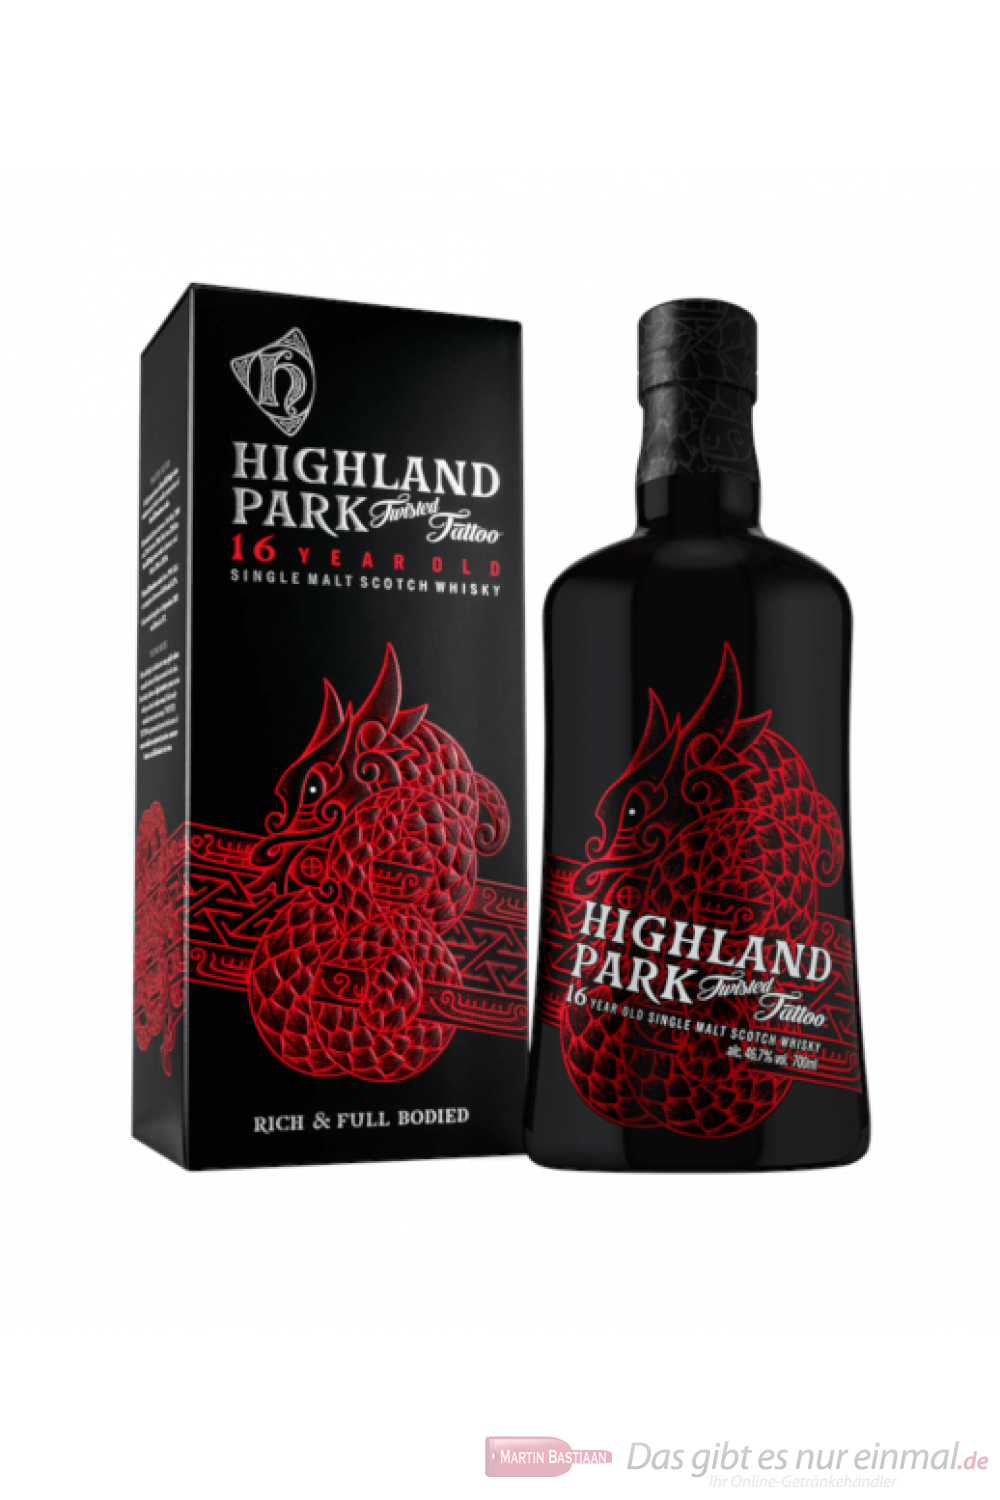 Highland Park Twisted Tattoo Single Malt Scotch Whisky 0,7l